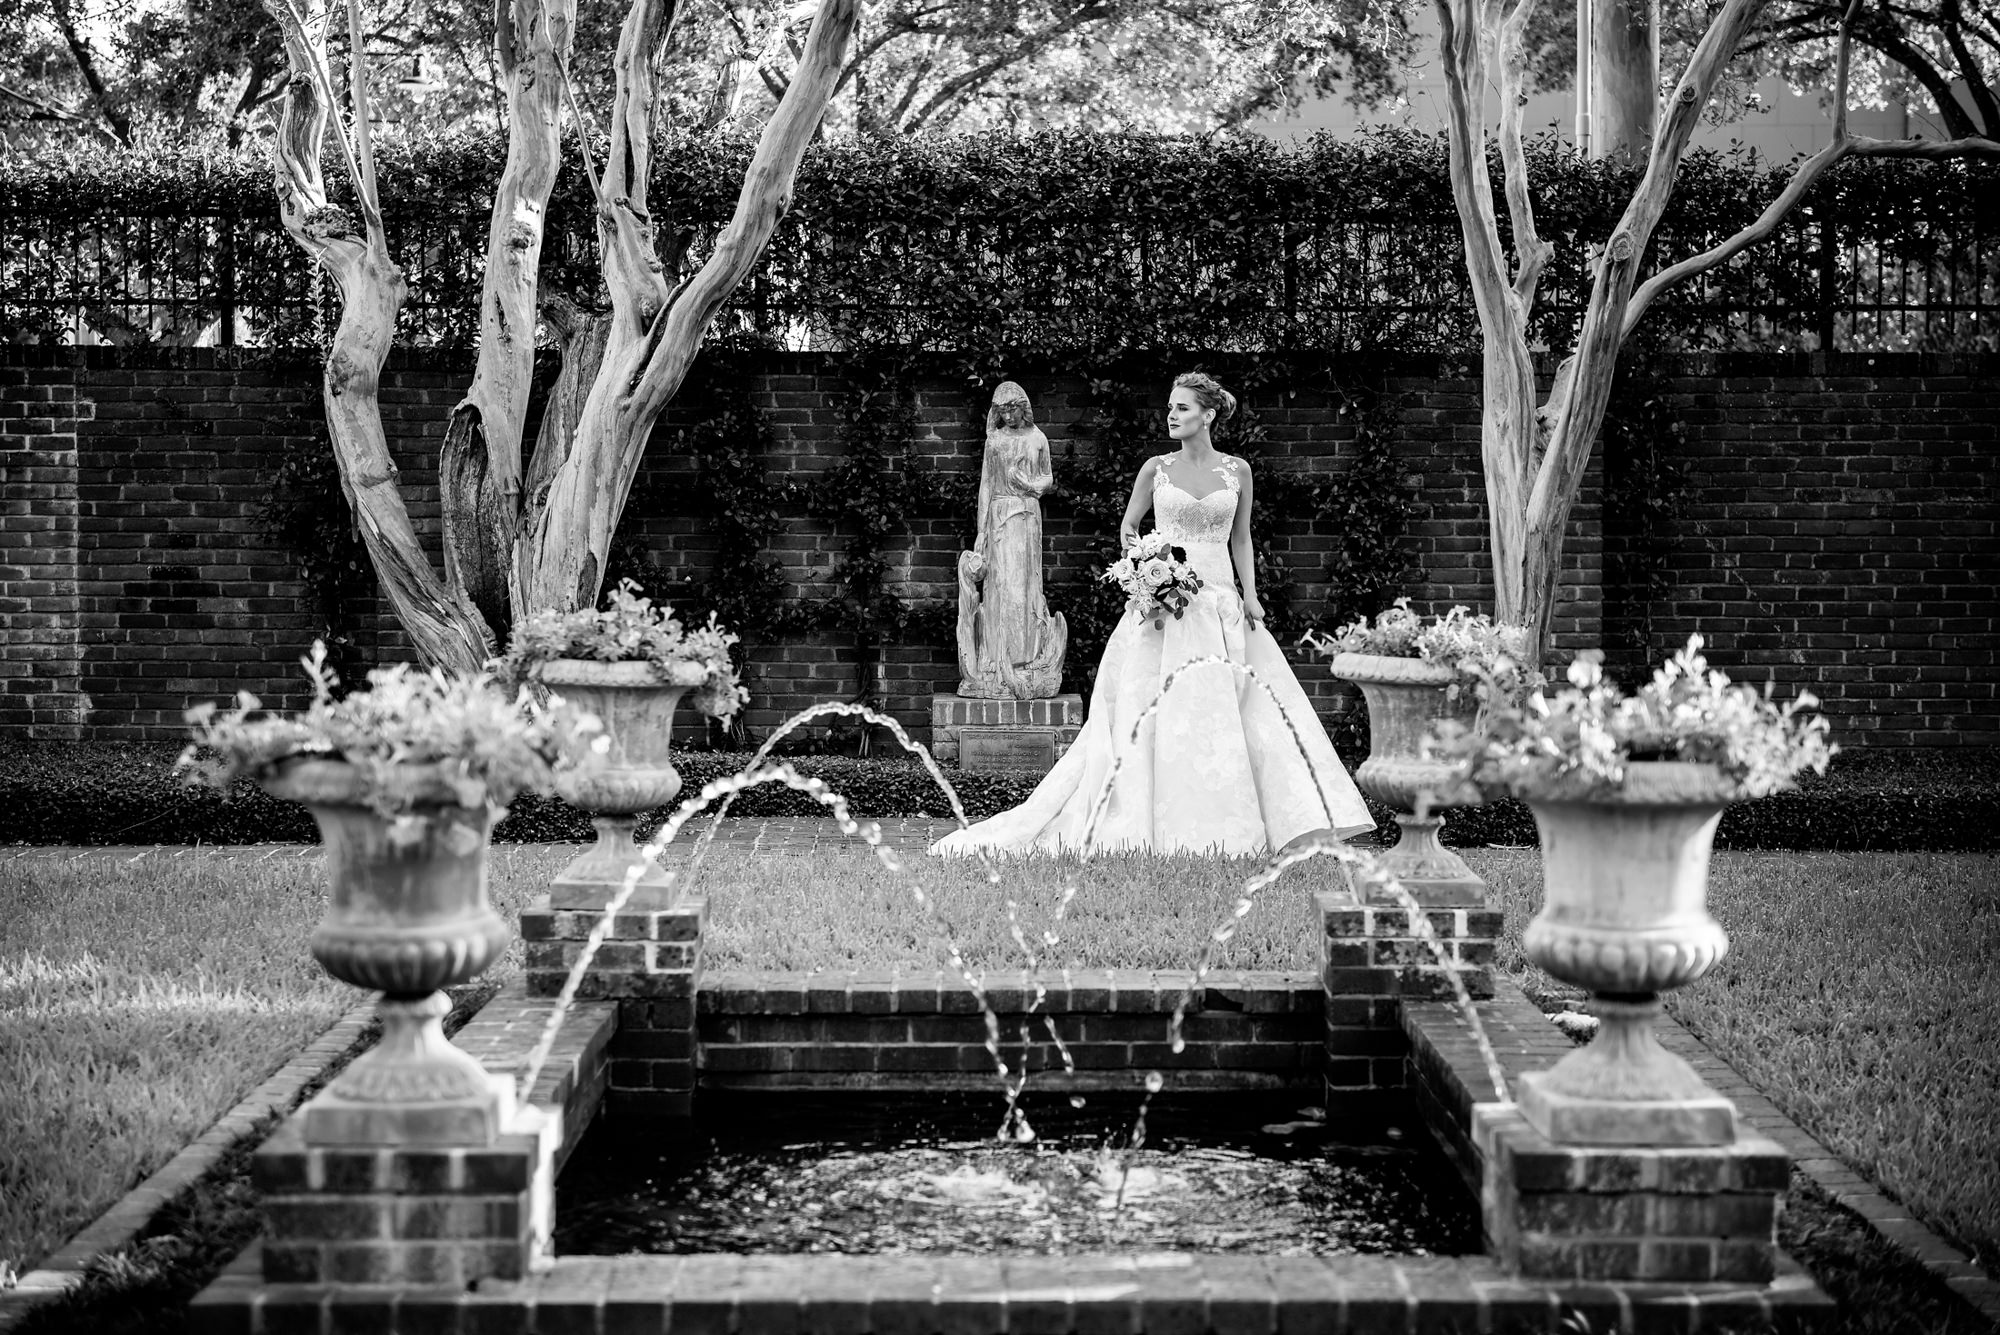 Bride pose in a beautiful garden, by Morgan Lynn Razi